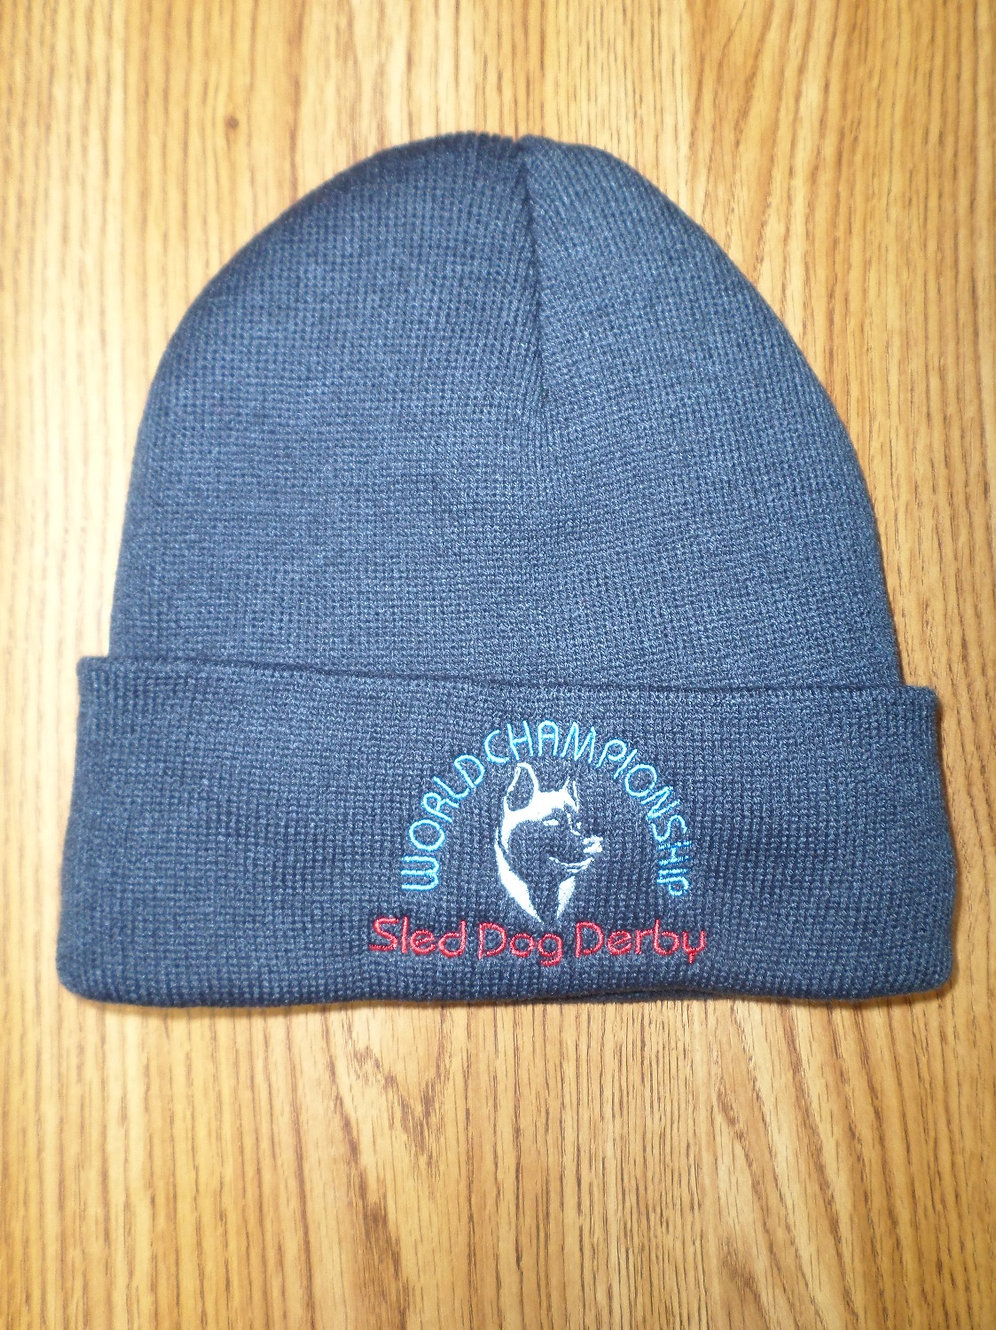 7d2c37cac Sled Dog Derby Fleece-Lined Knit Cap